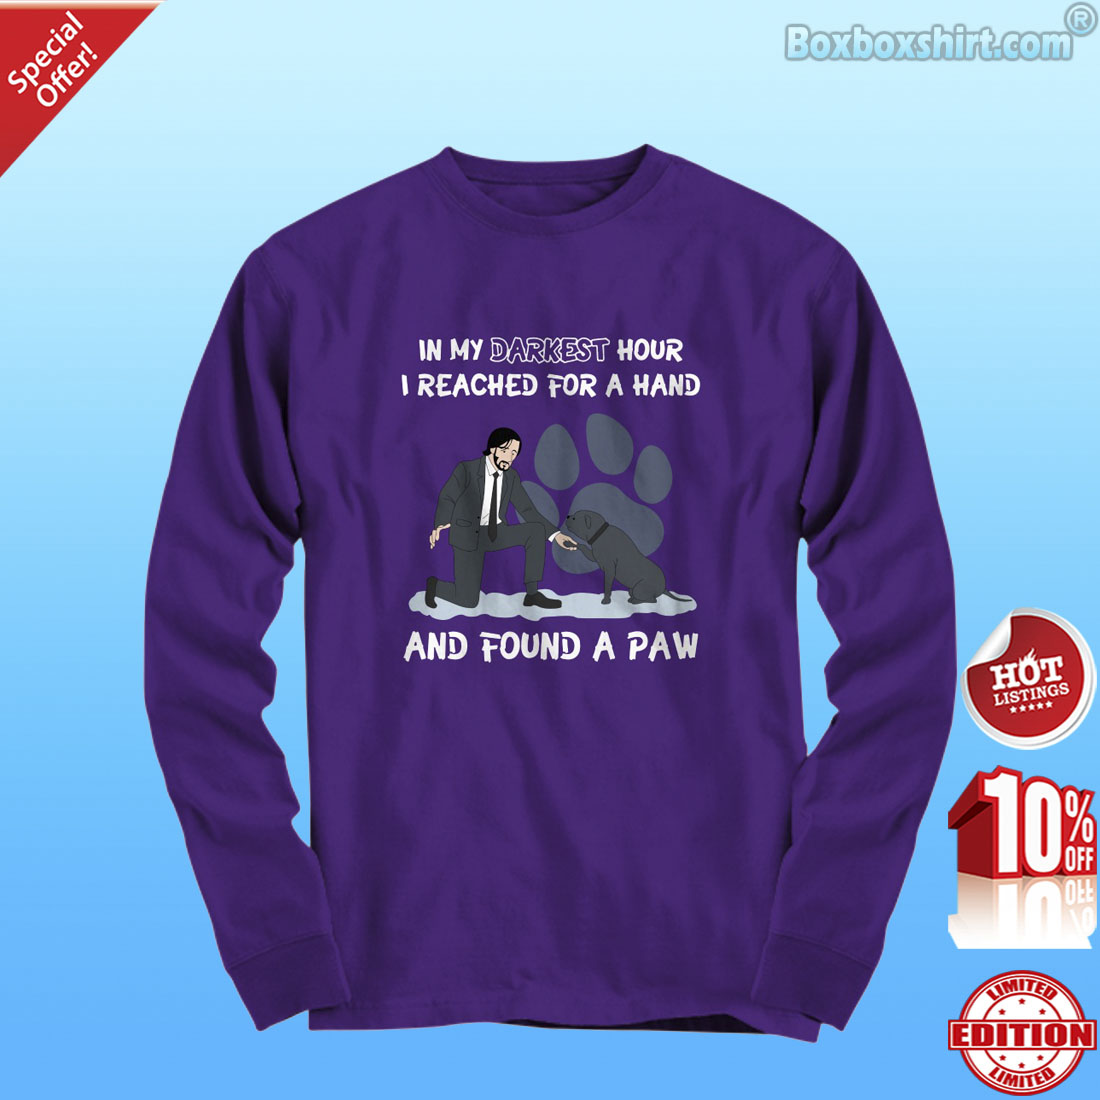 John Wick in my darkest hour I reached for a hand shirt